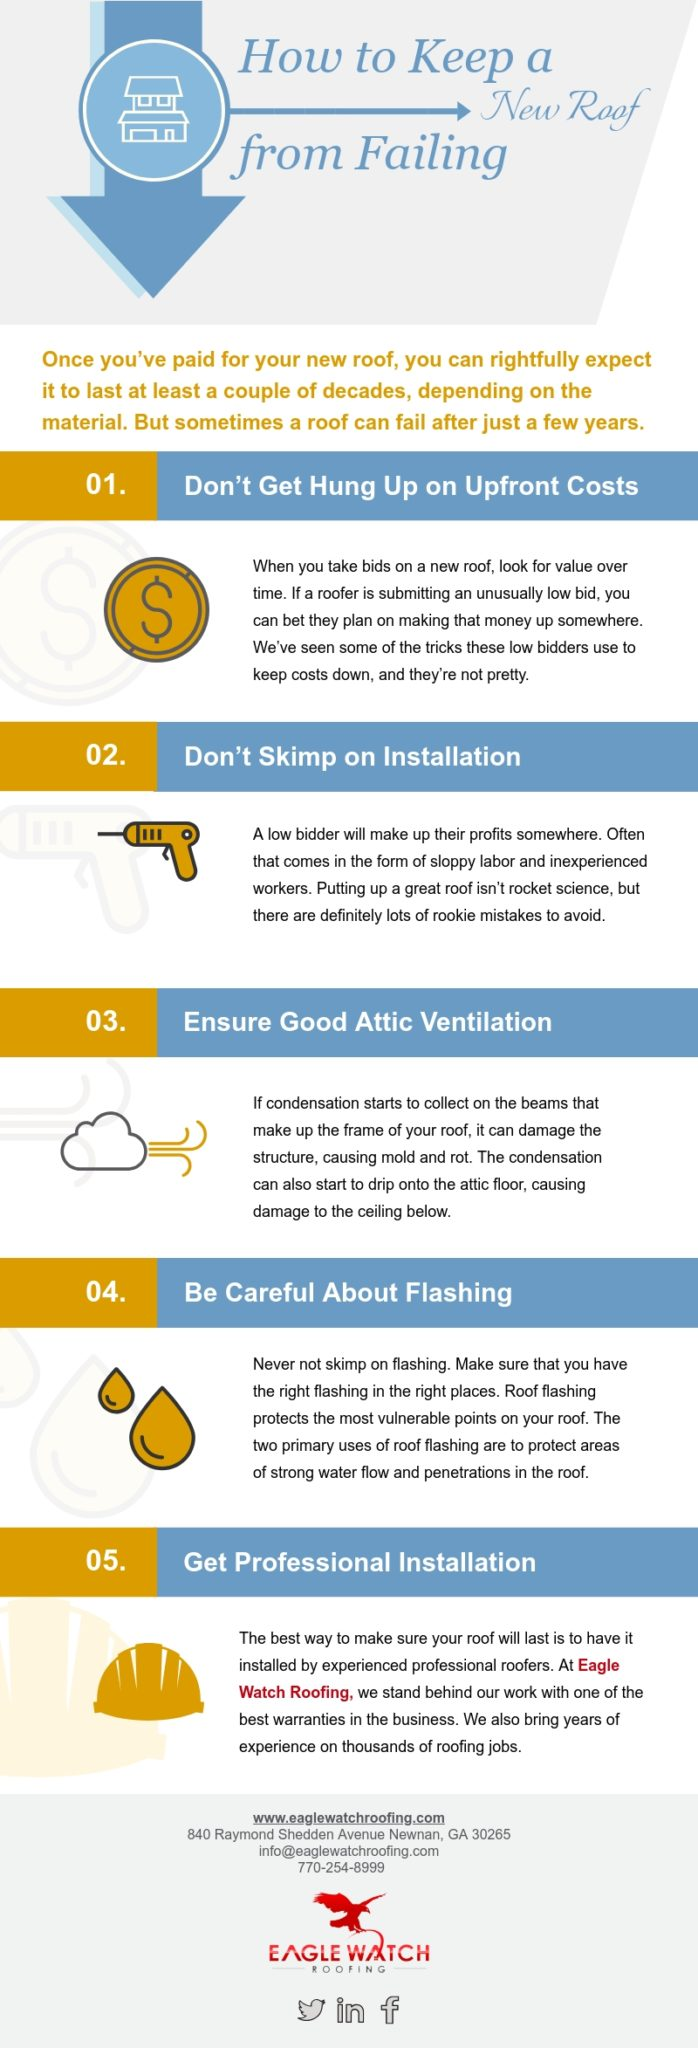 How to Keep a New Roof from Failing [infographic]